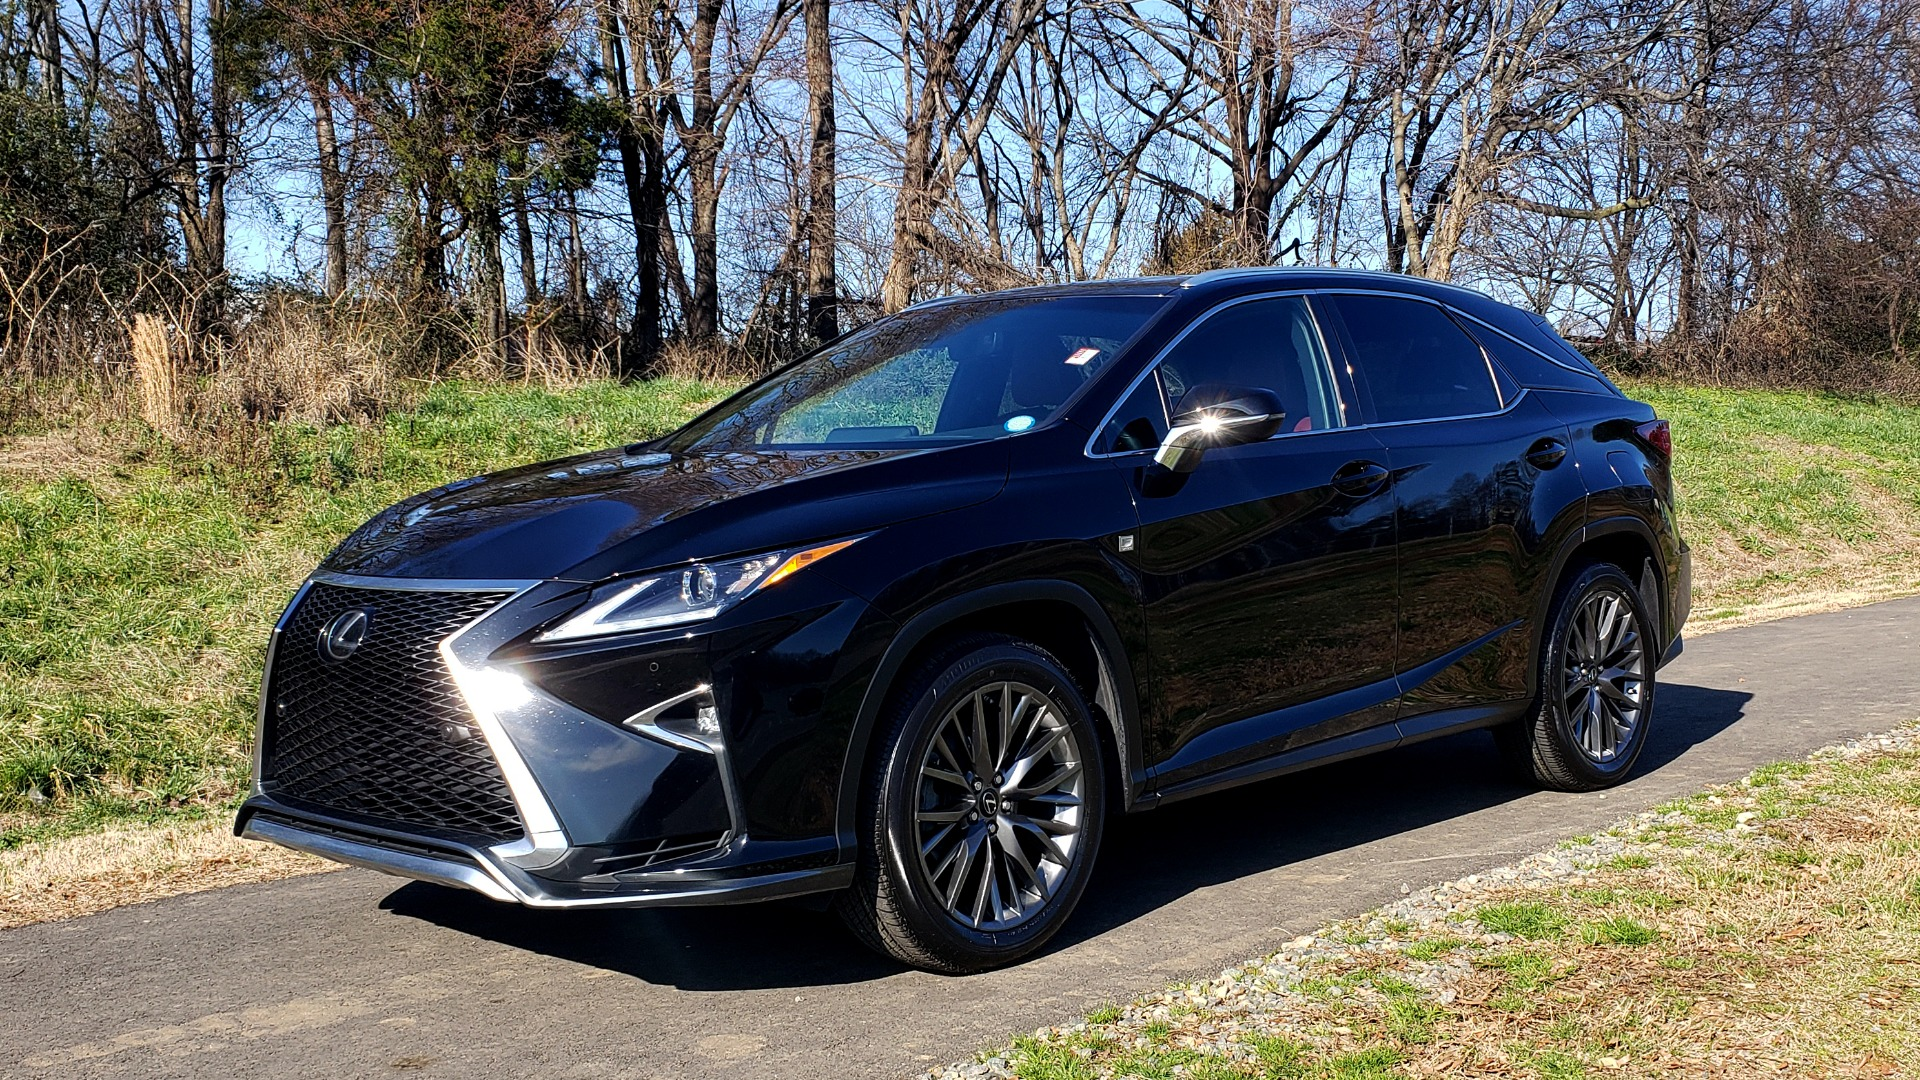 Used 2017 Lexus RX350 AWD F-SPORT / NAV / SUNROOF / BSM / PARK ASST / TOWING / REARVIE for sale Sold at Formula Imports in Charlotte NC 28227 1